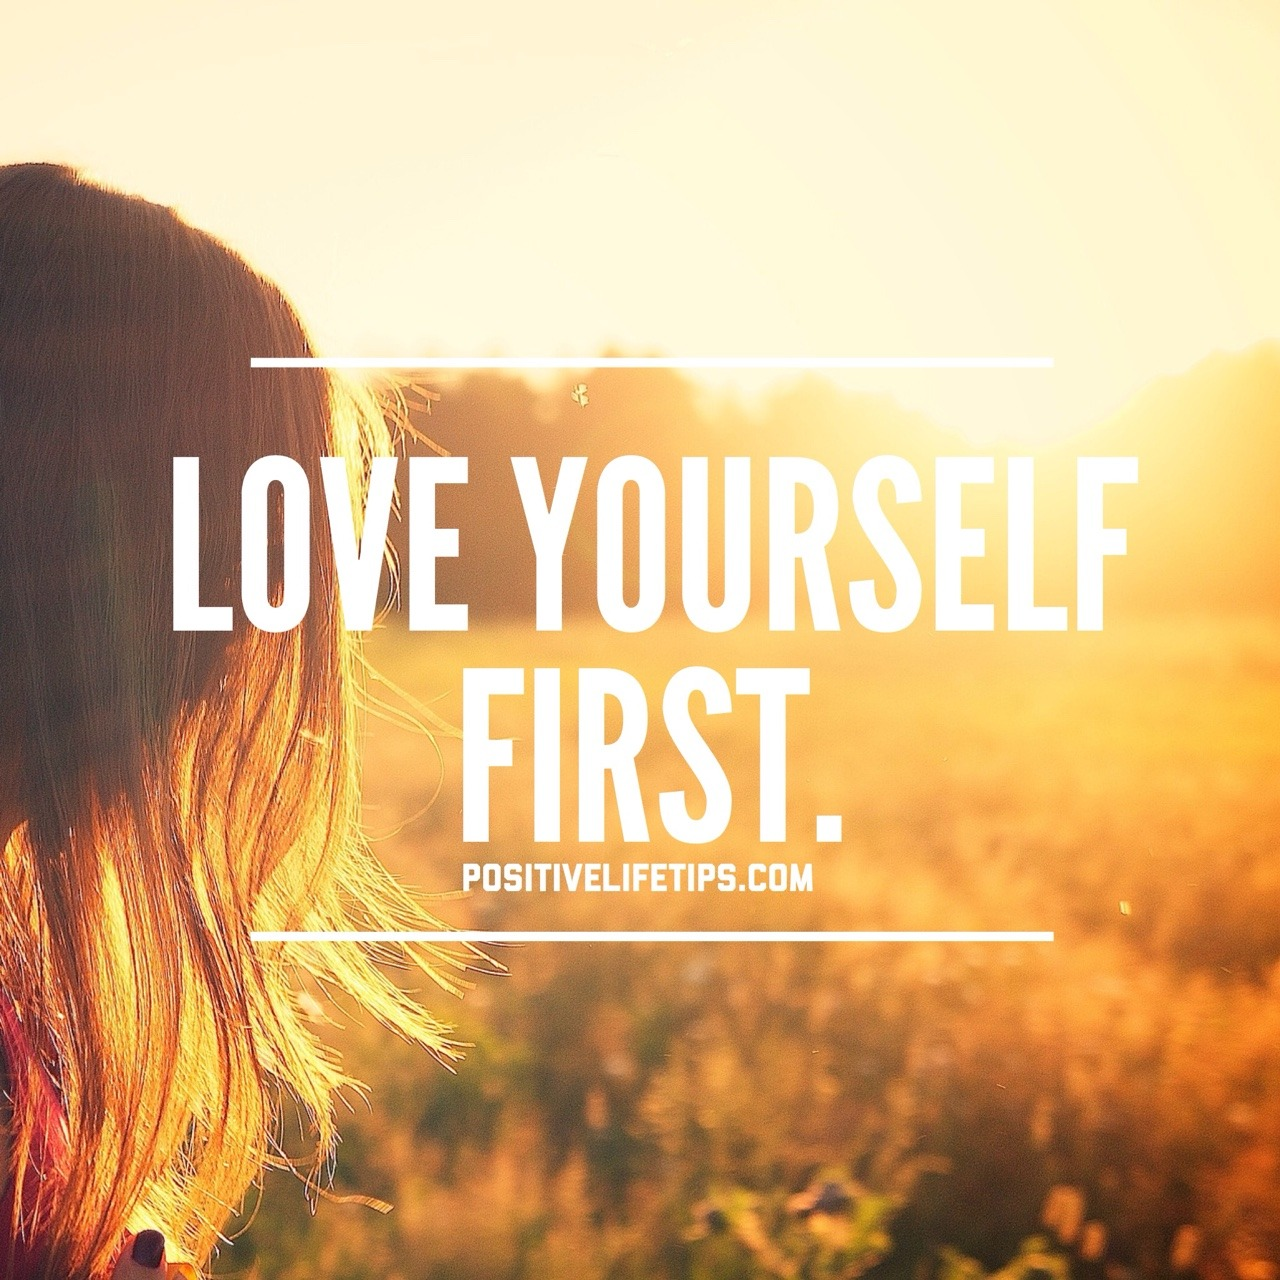 Site, with love yourself first very